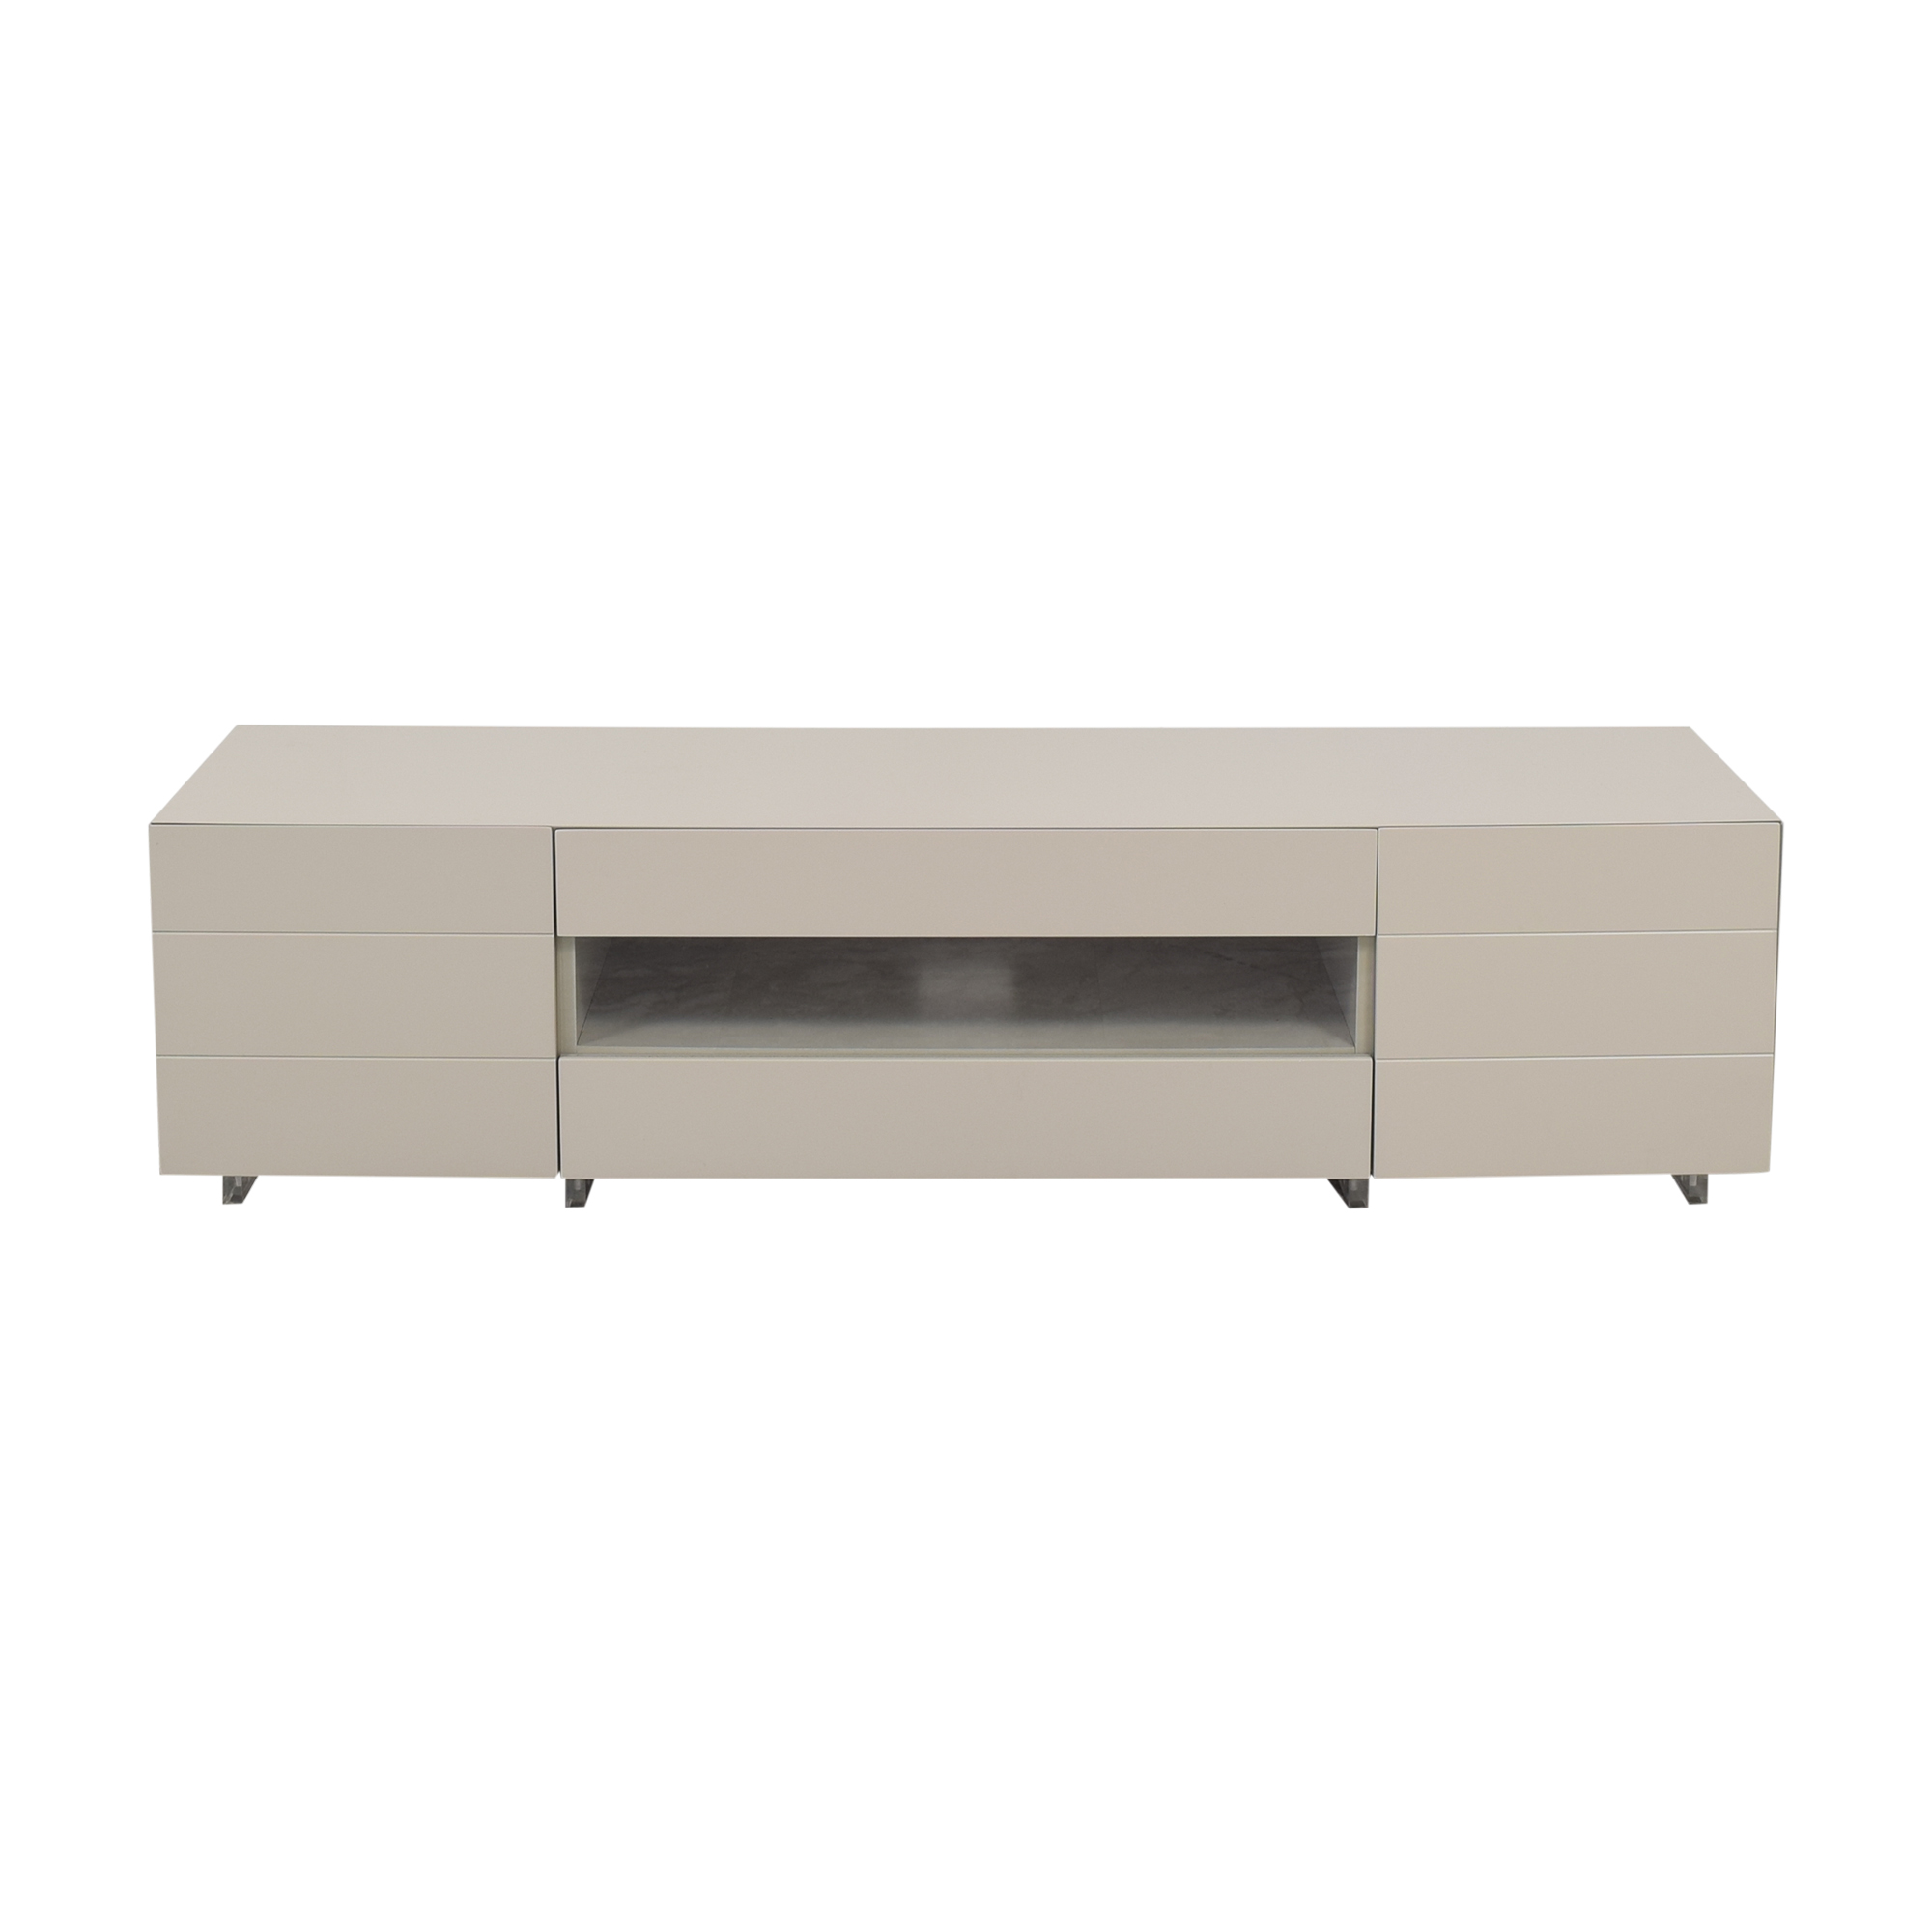 ABC Carpet & Home Media Unit / Storage